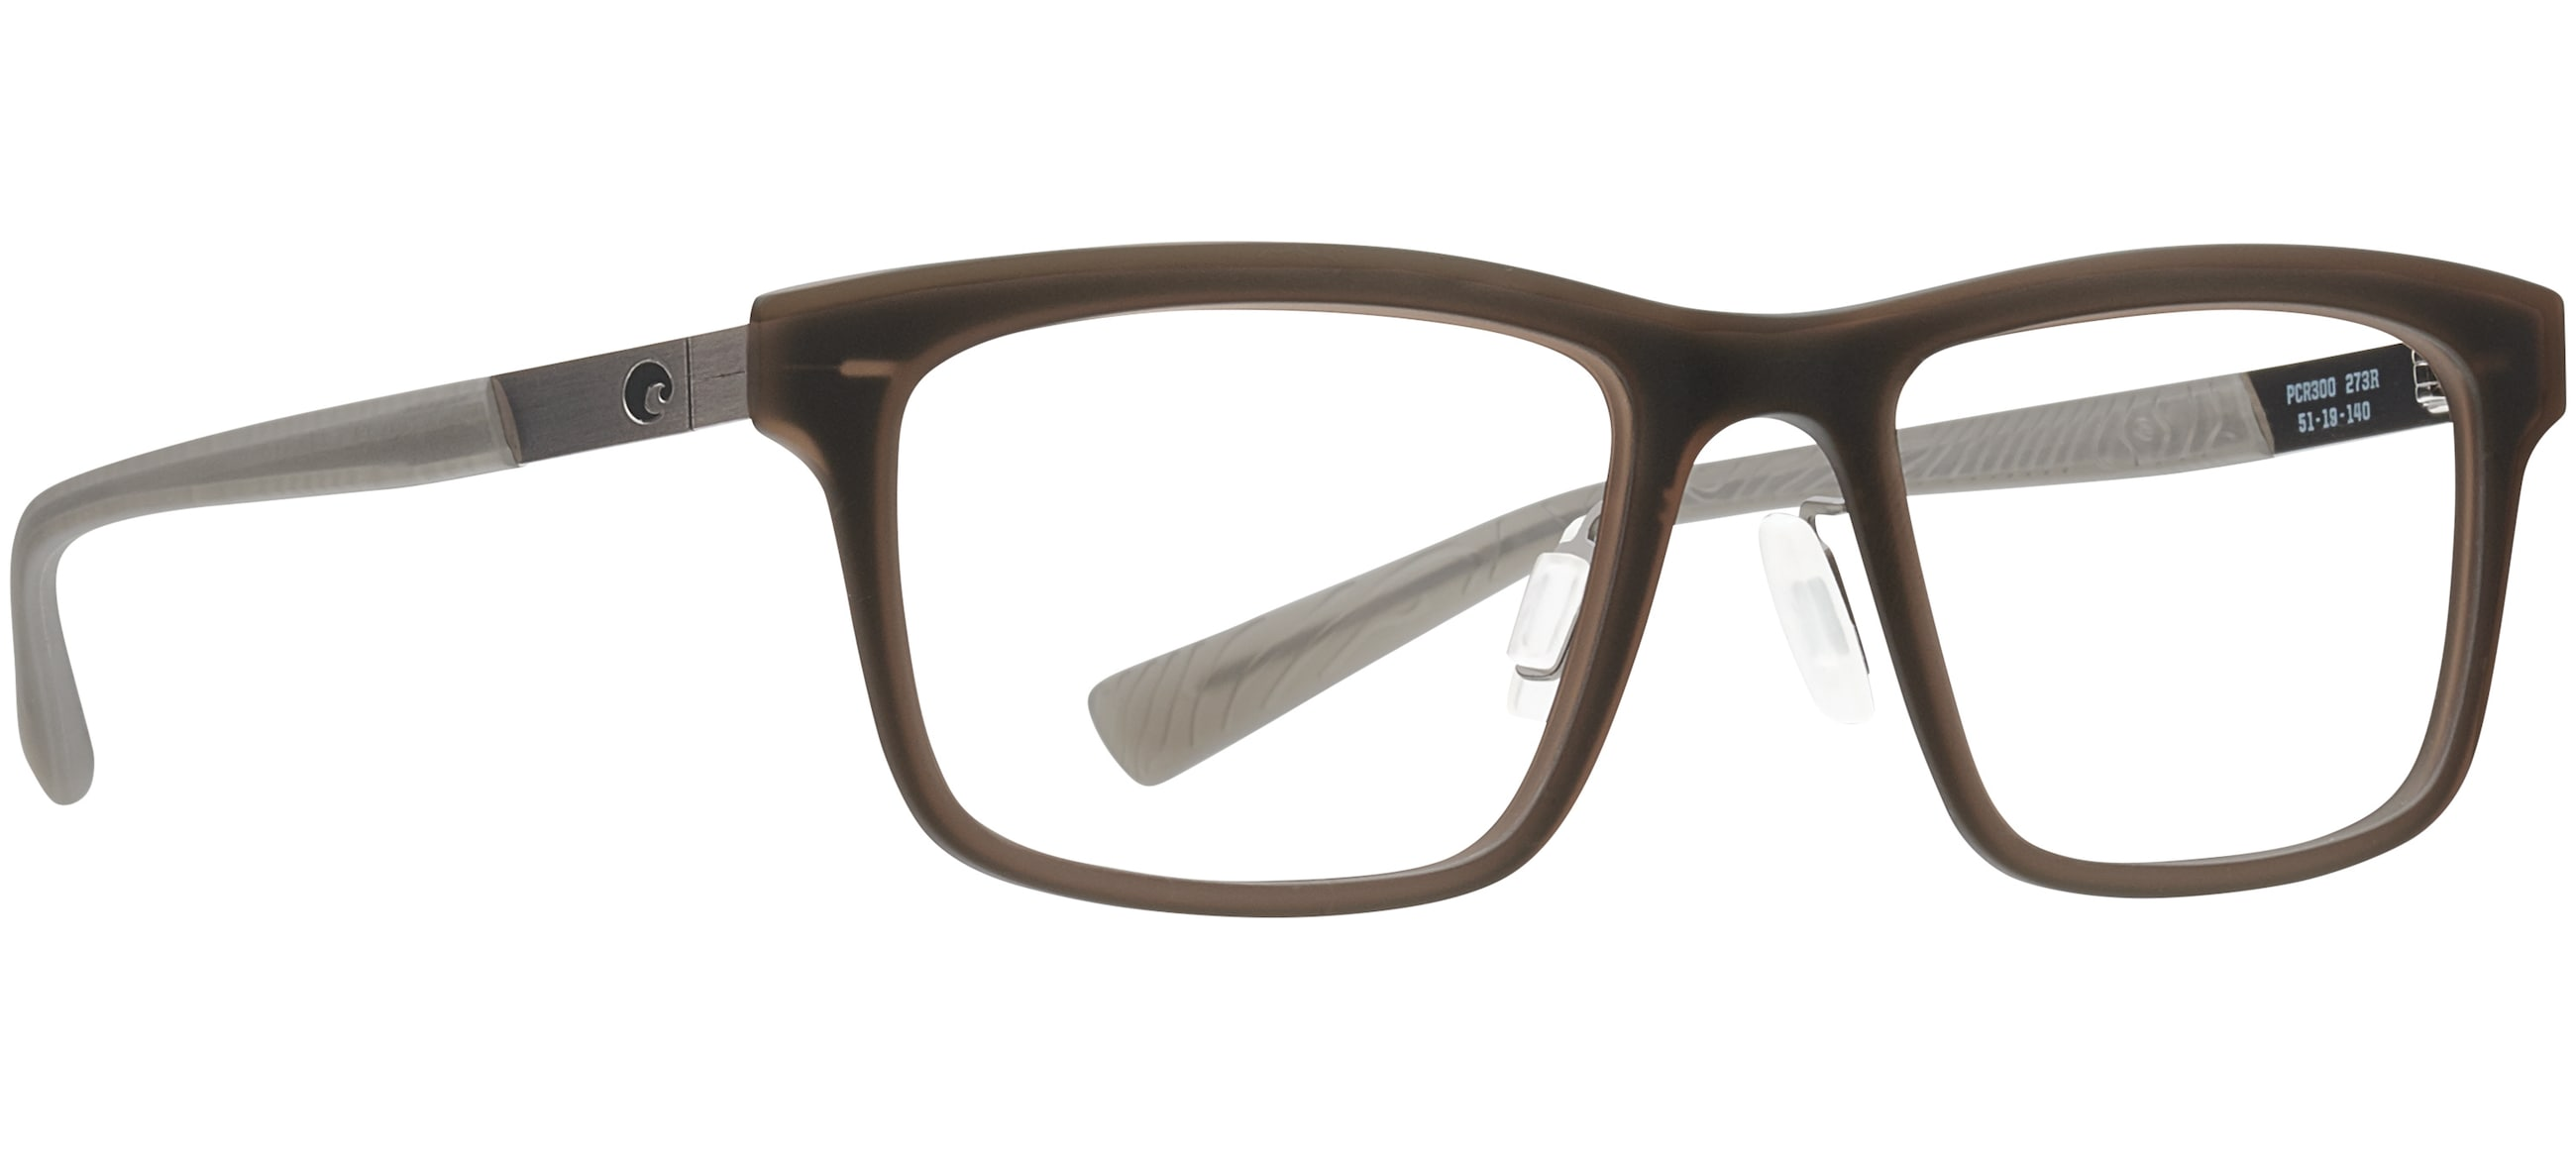 Pacific Rise 300 Eyeglasses